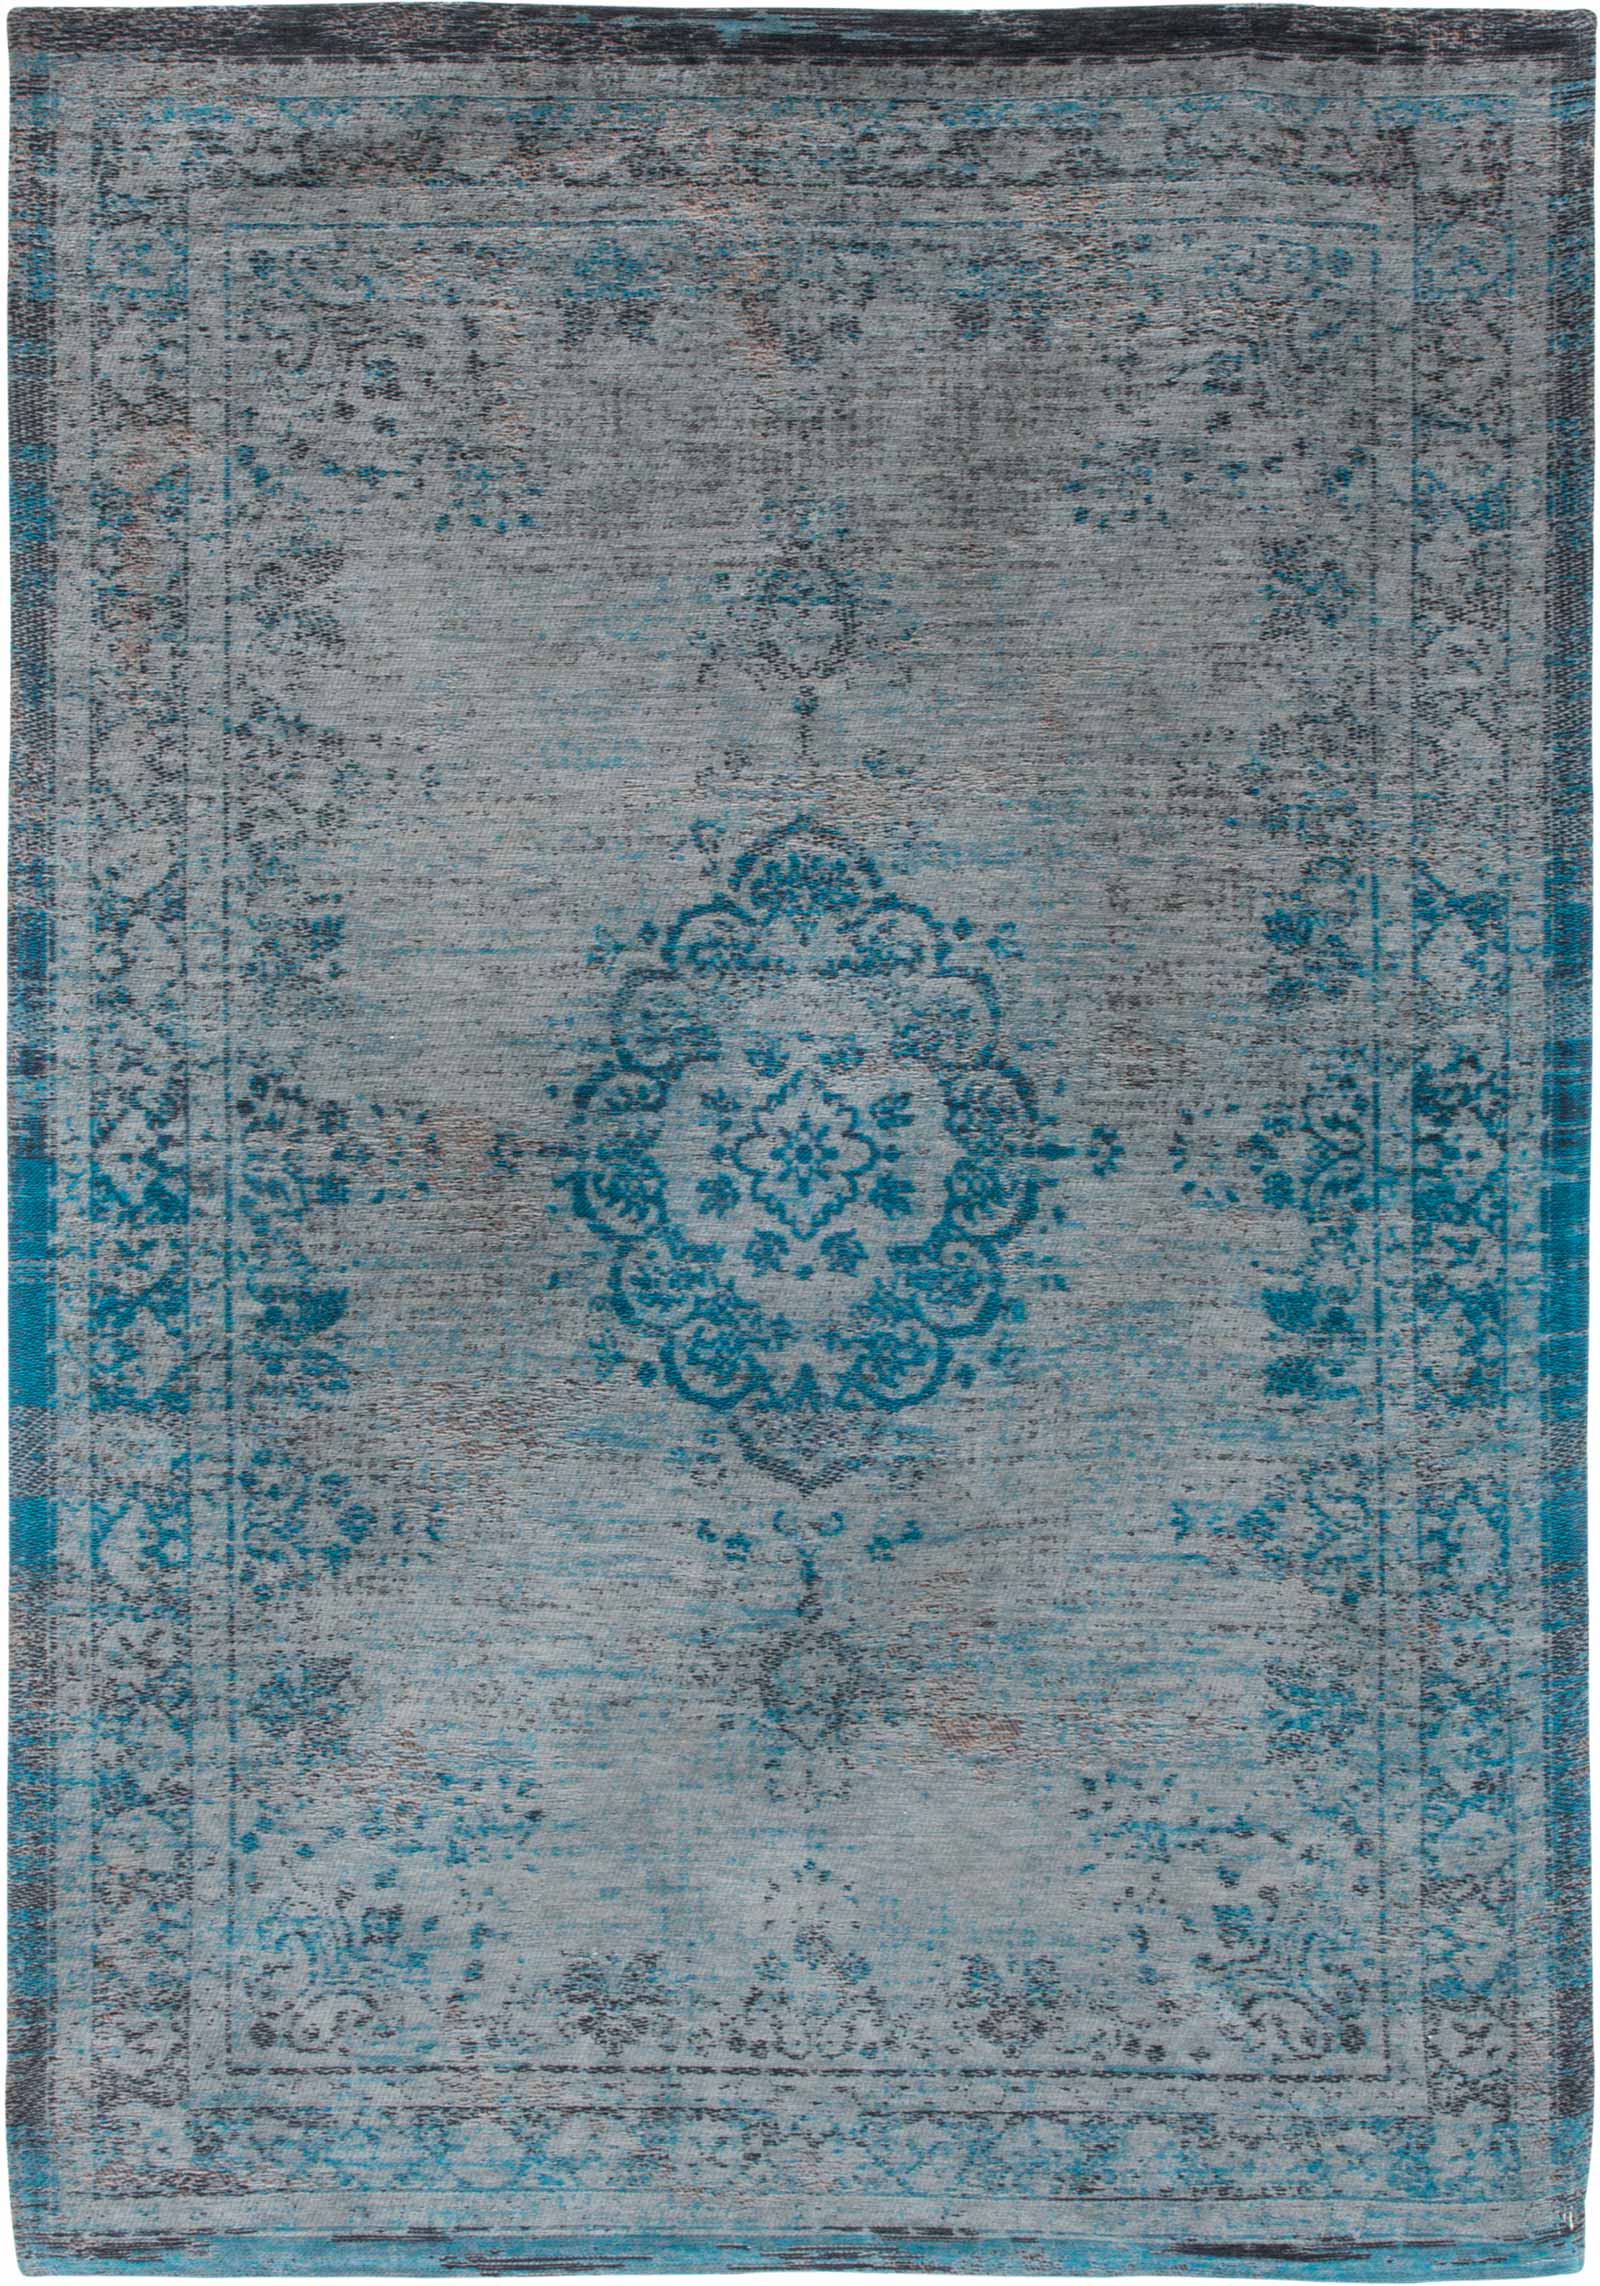 Louis De Porterre Teppiche Louis De Poortere Luxury Rug Shop Uk